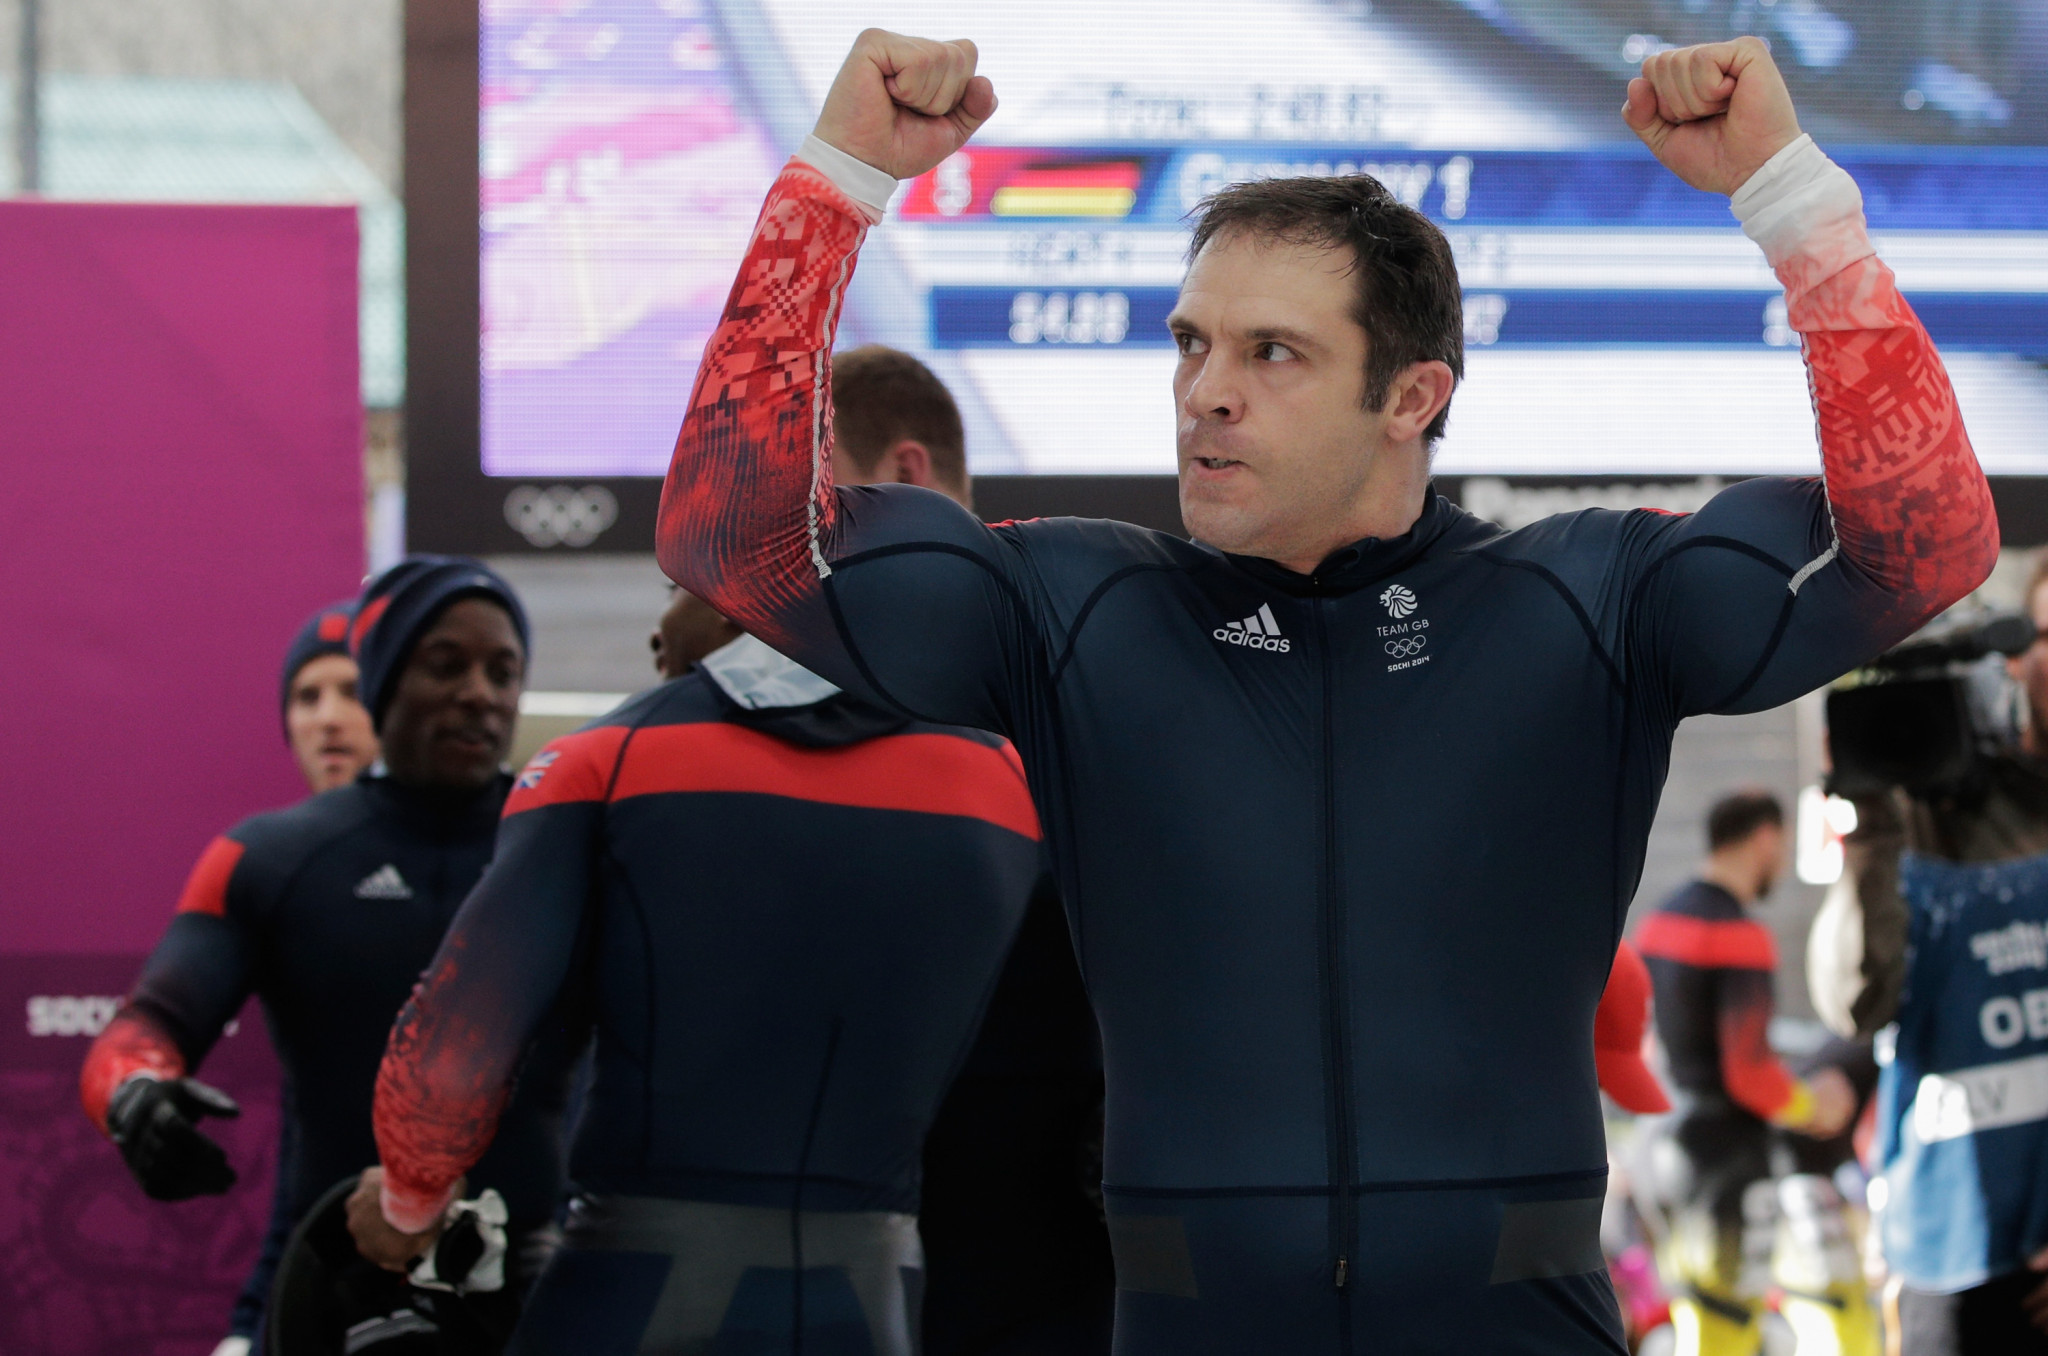 John Jackson has described the Russia situation in bobsleigh and skeleton as an